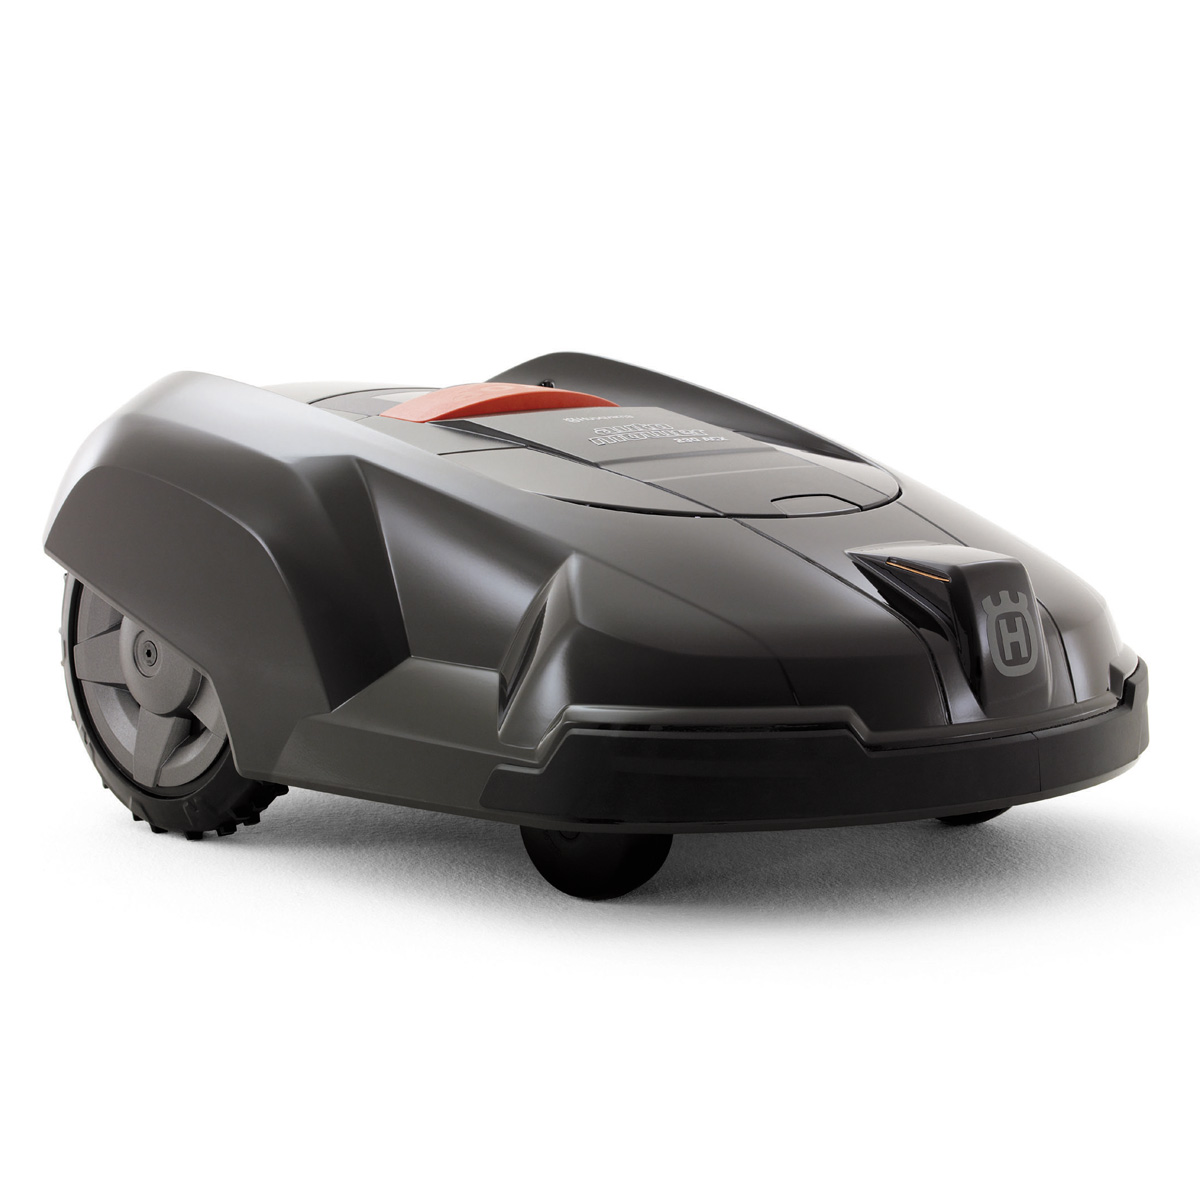 husqvarna automower robotic lawn mower the green head. Black Bedroom Furniture Sets. Home Design Ideas